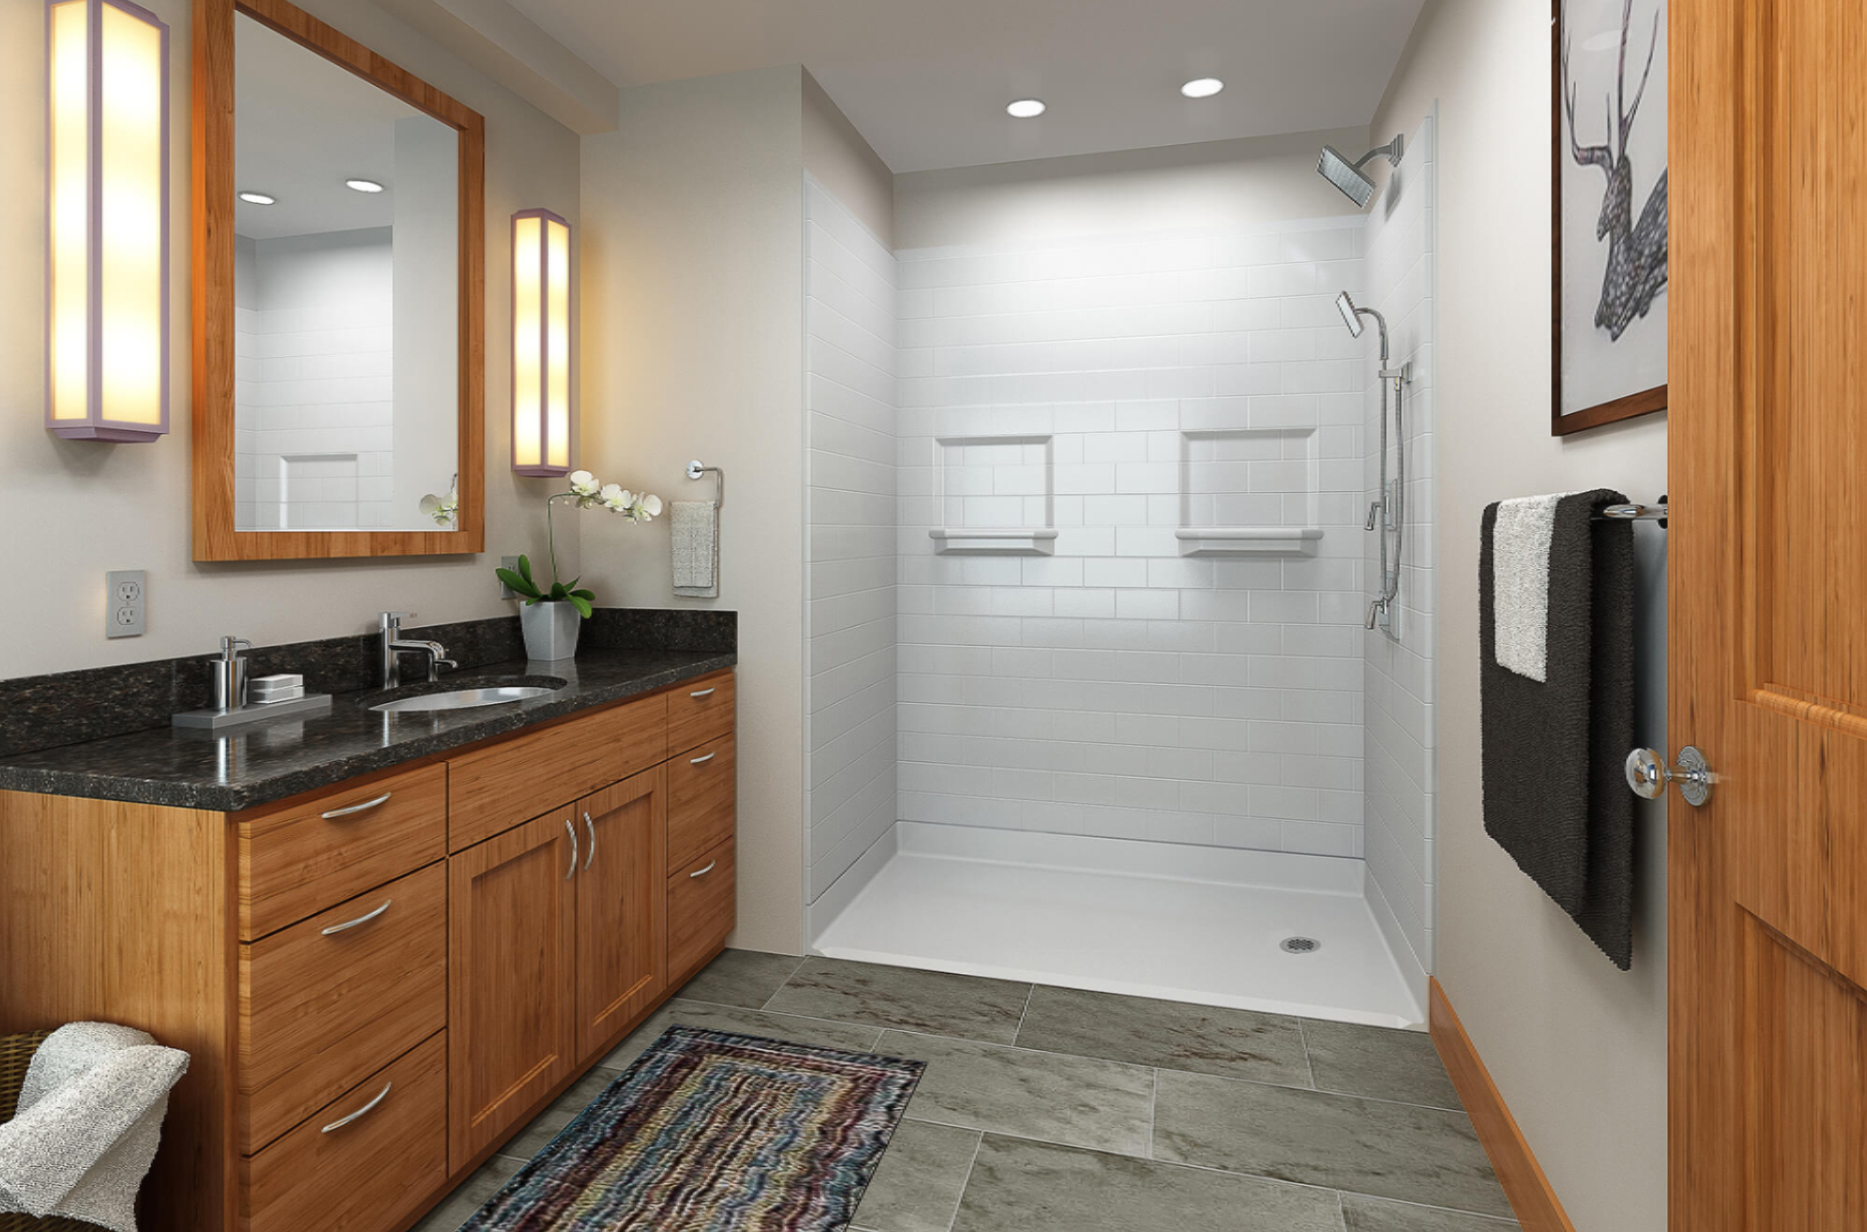 Choosing The Best Walk-In Accessible Shower #2